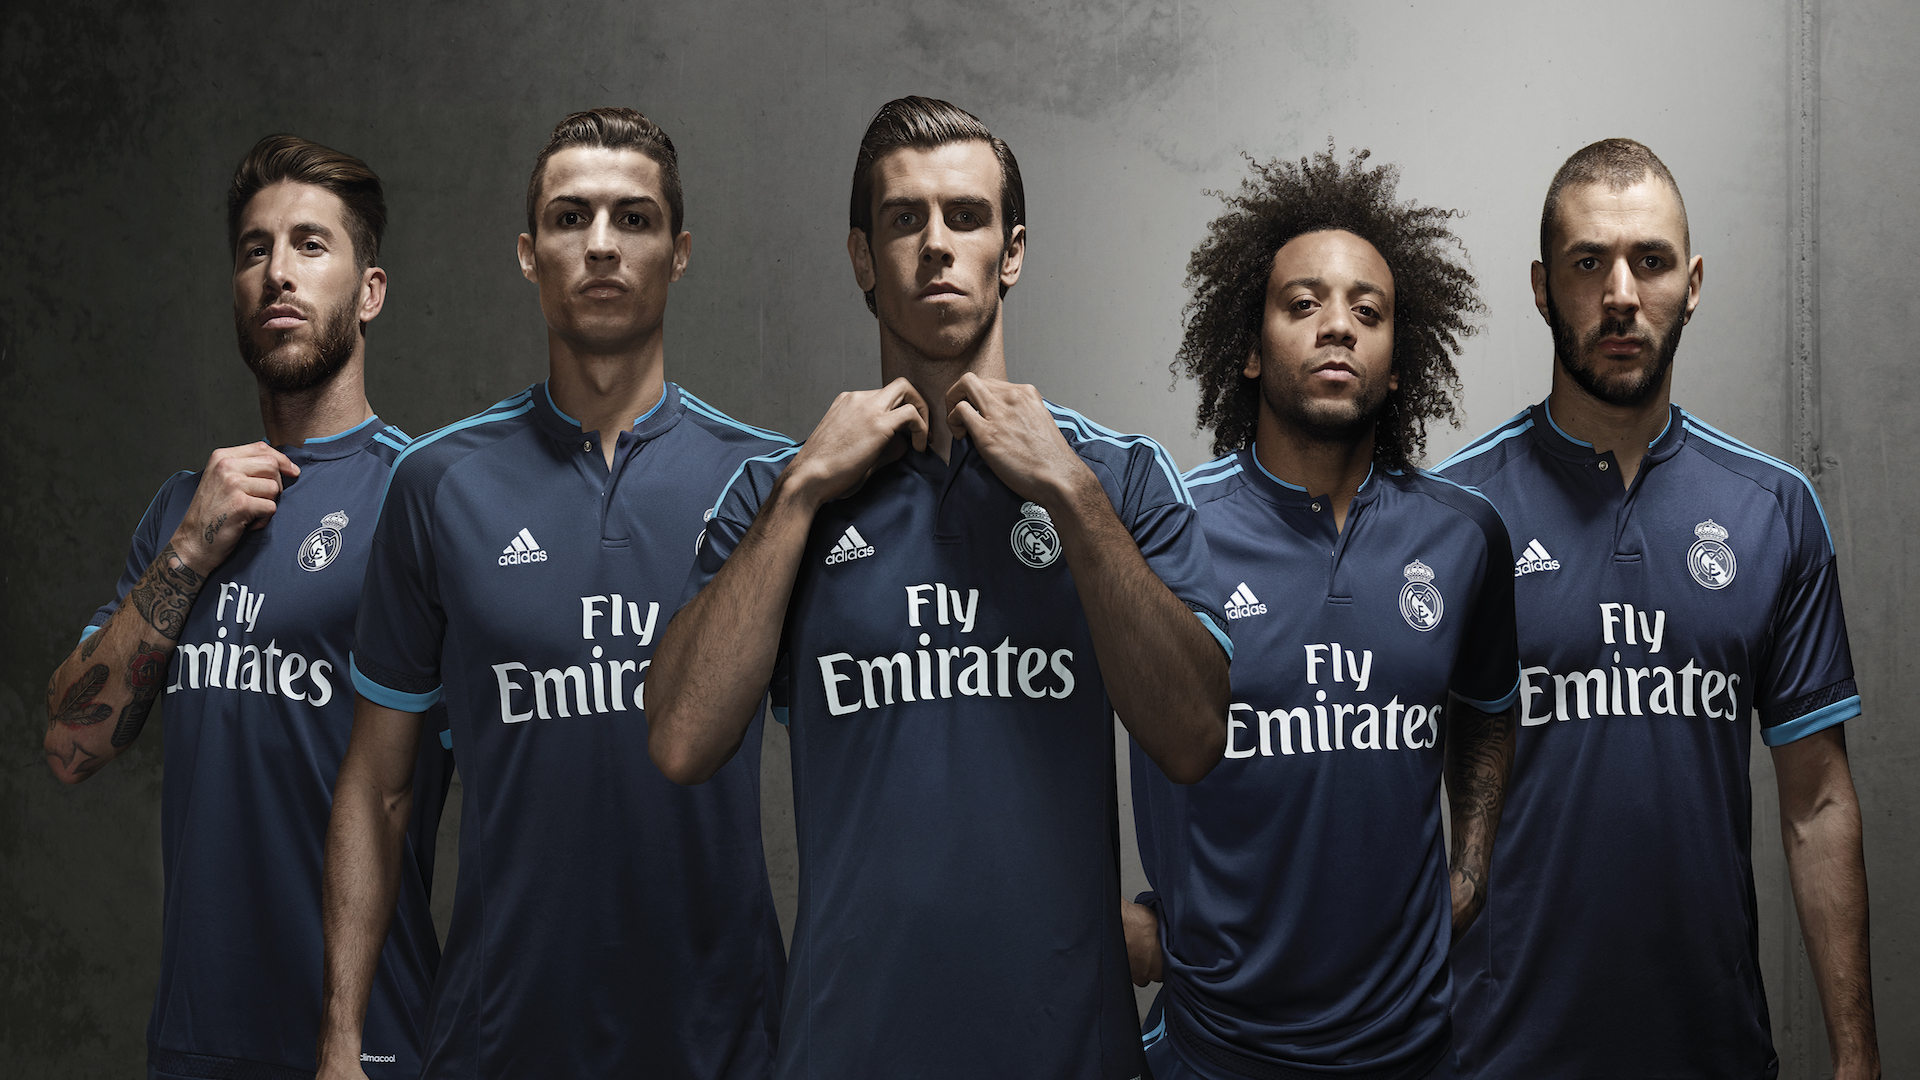 Las diez últimas camisetas del Real Madrid